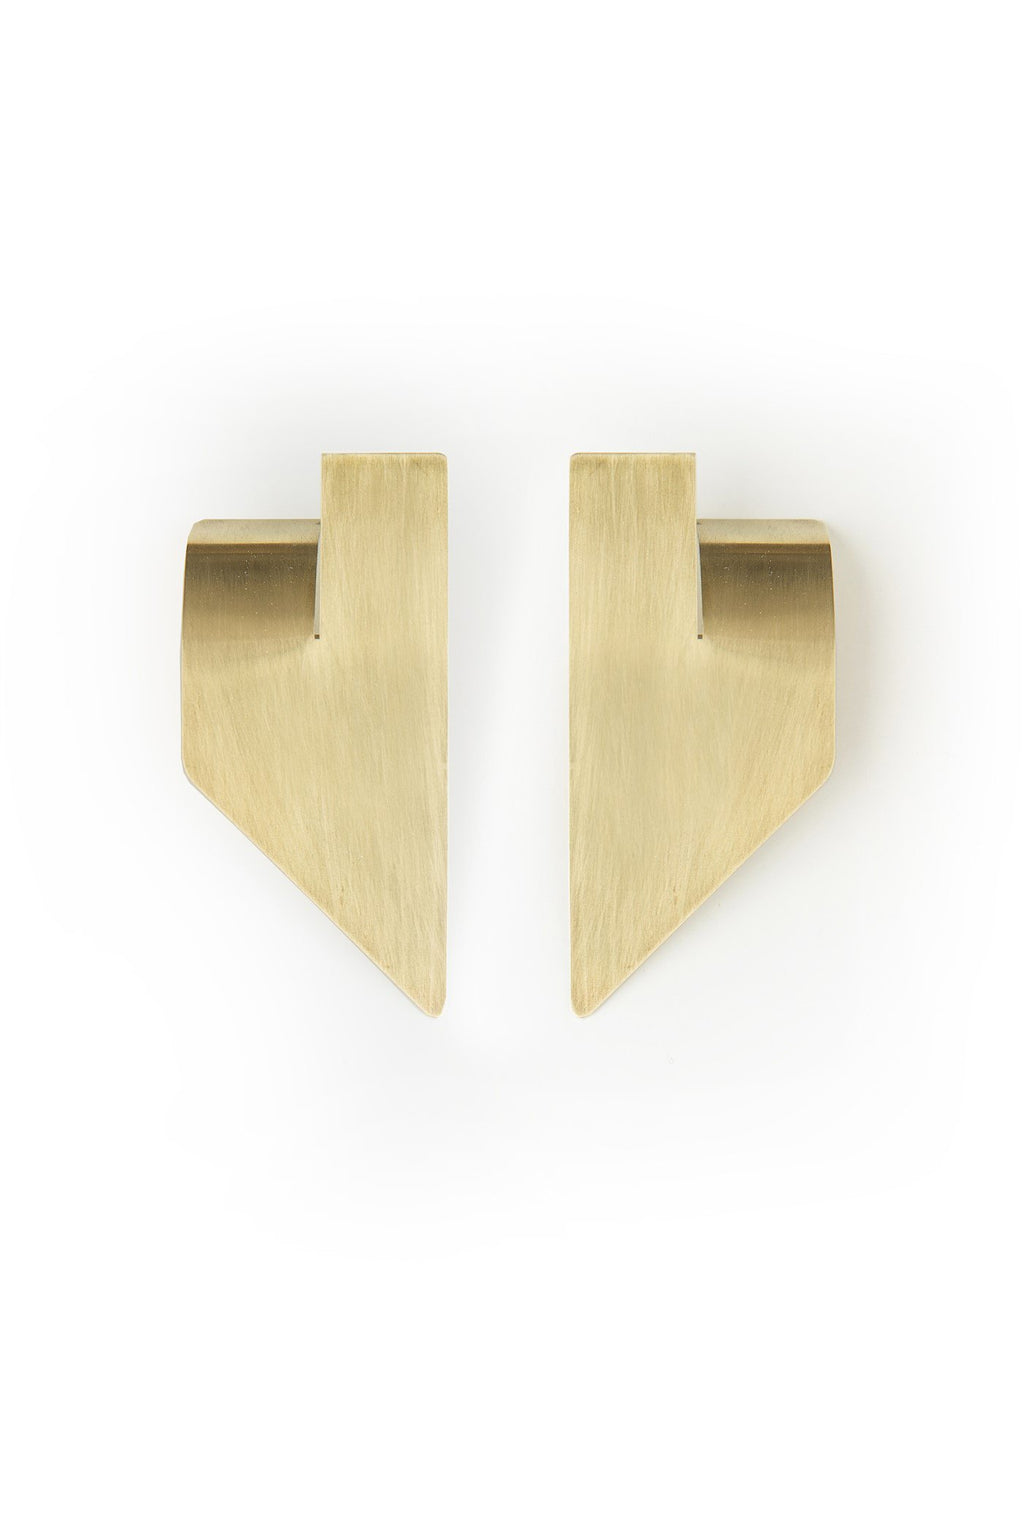 SLIT EARRINGS N°2 brass